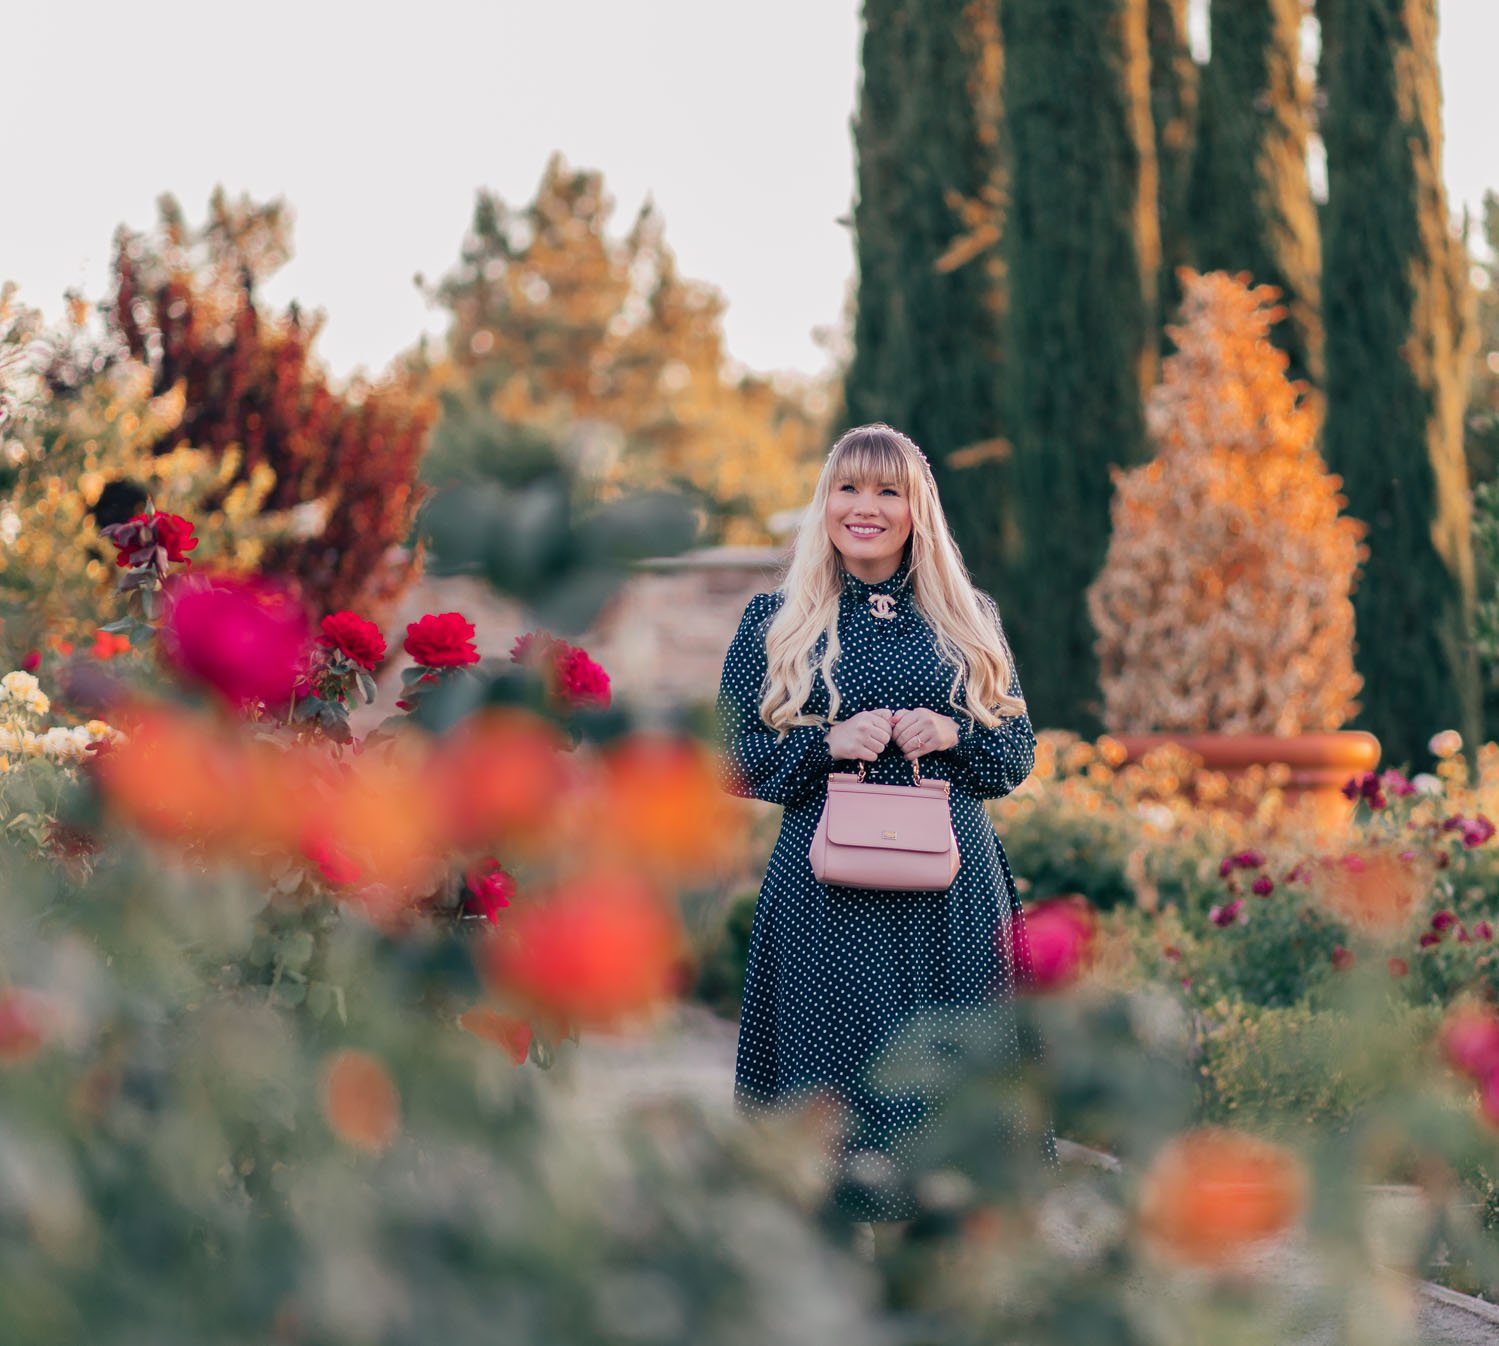 Fashion blogger Elizabeth Hugen of Lizzie in Lace wears a vintage style fall outfit including an emerald green polka dot dress, pearl Chanel brooch and a pink Miss Sicily Dolce and Gabbana handbag